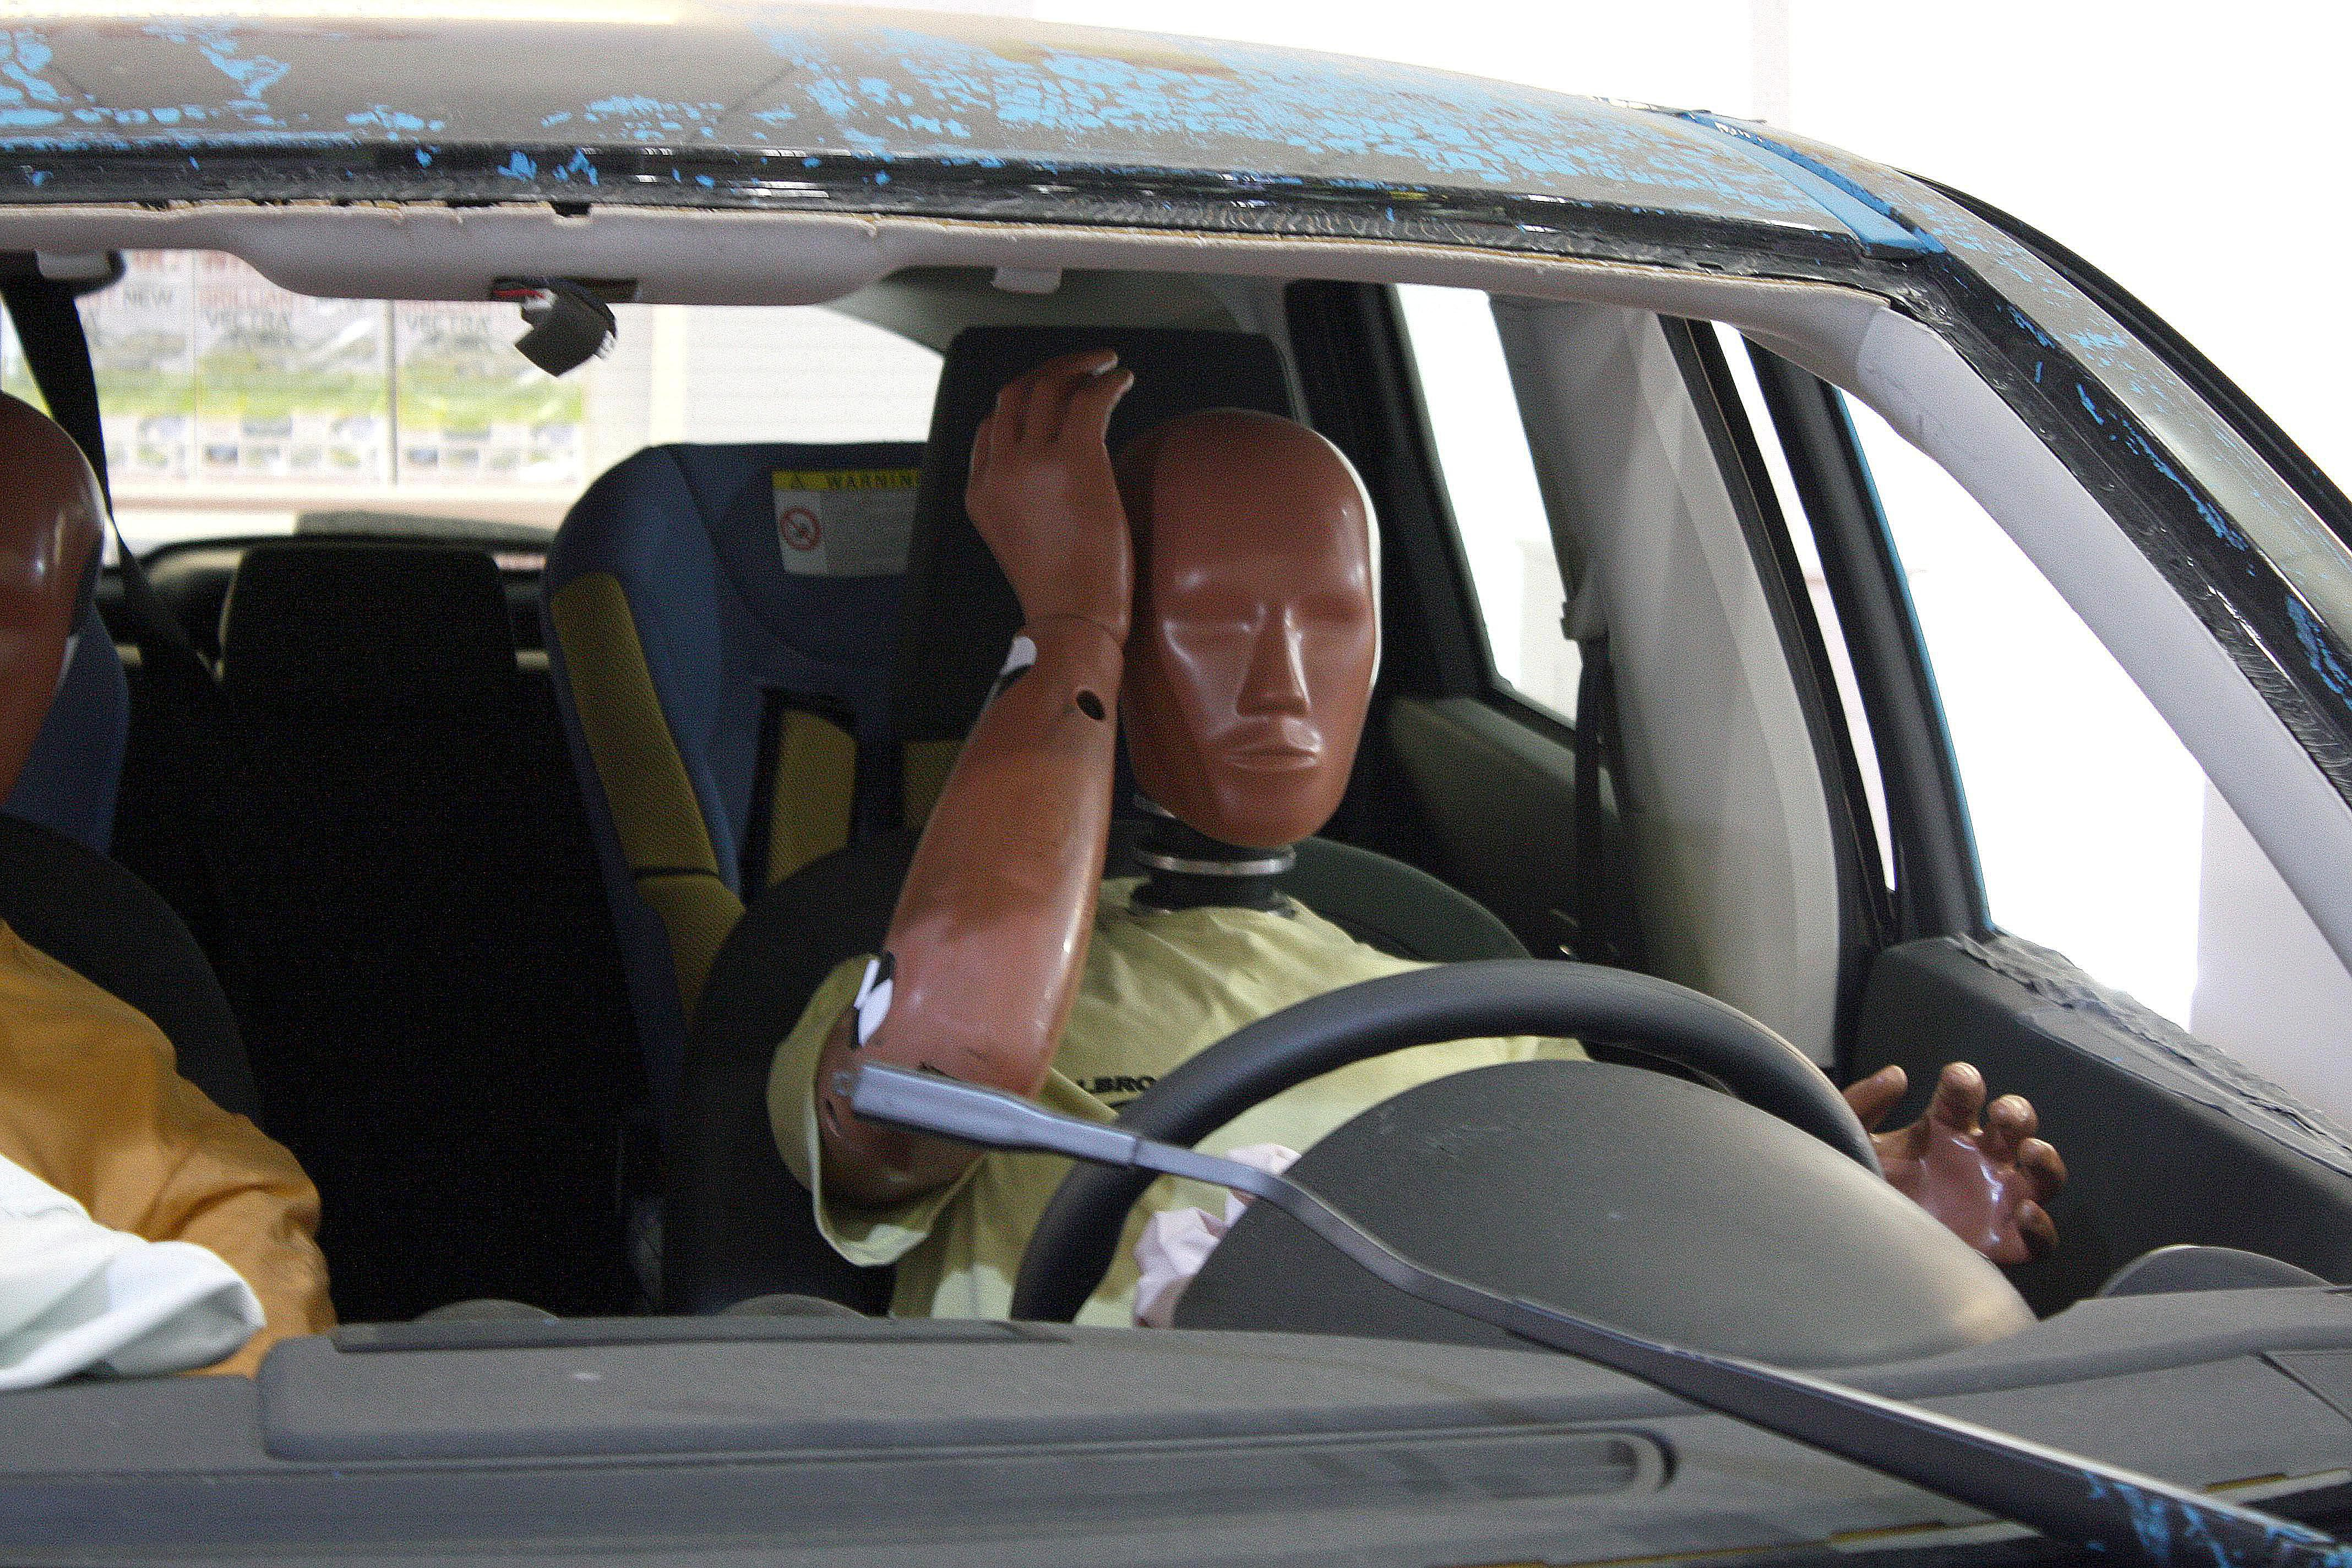 Nhtsa When To Replace A Car Seat After A Crash